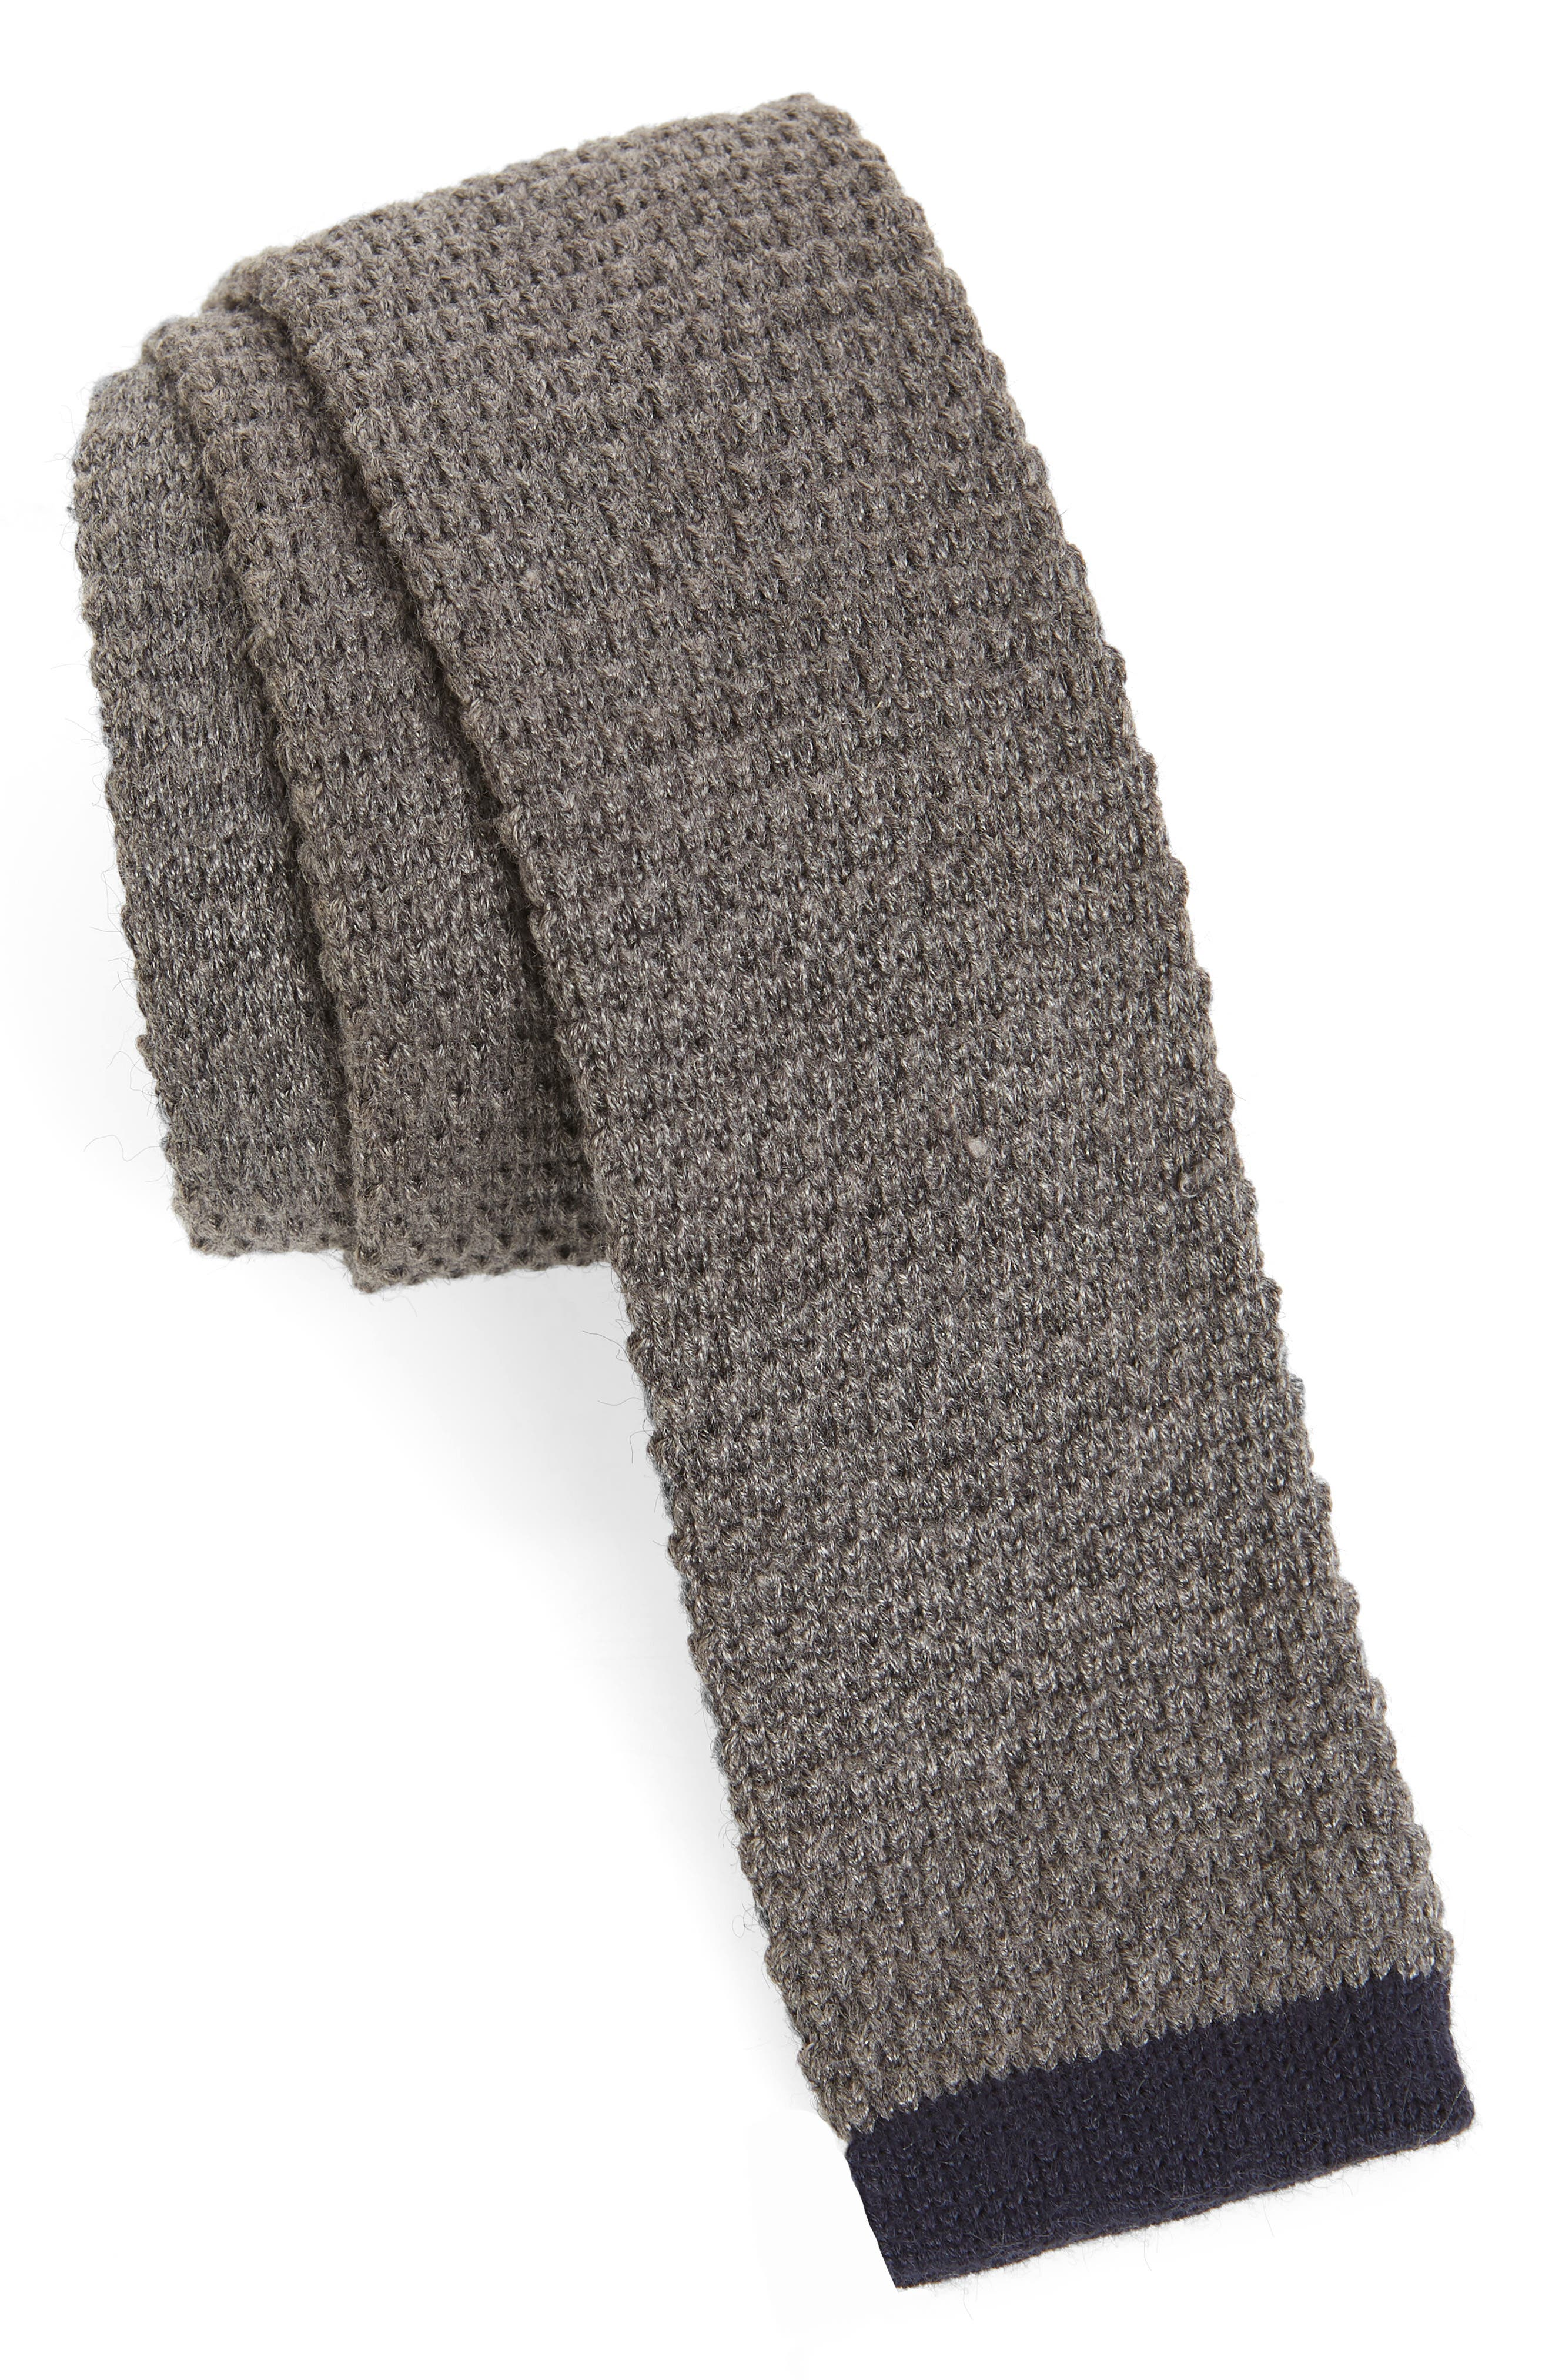 Belvin Knit Skinny Tie,                             Main thumbnail 1, color,                             CHARCOAL